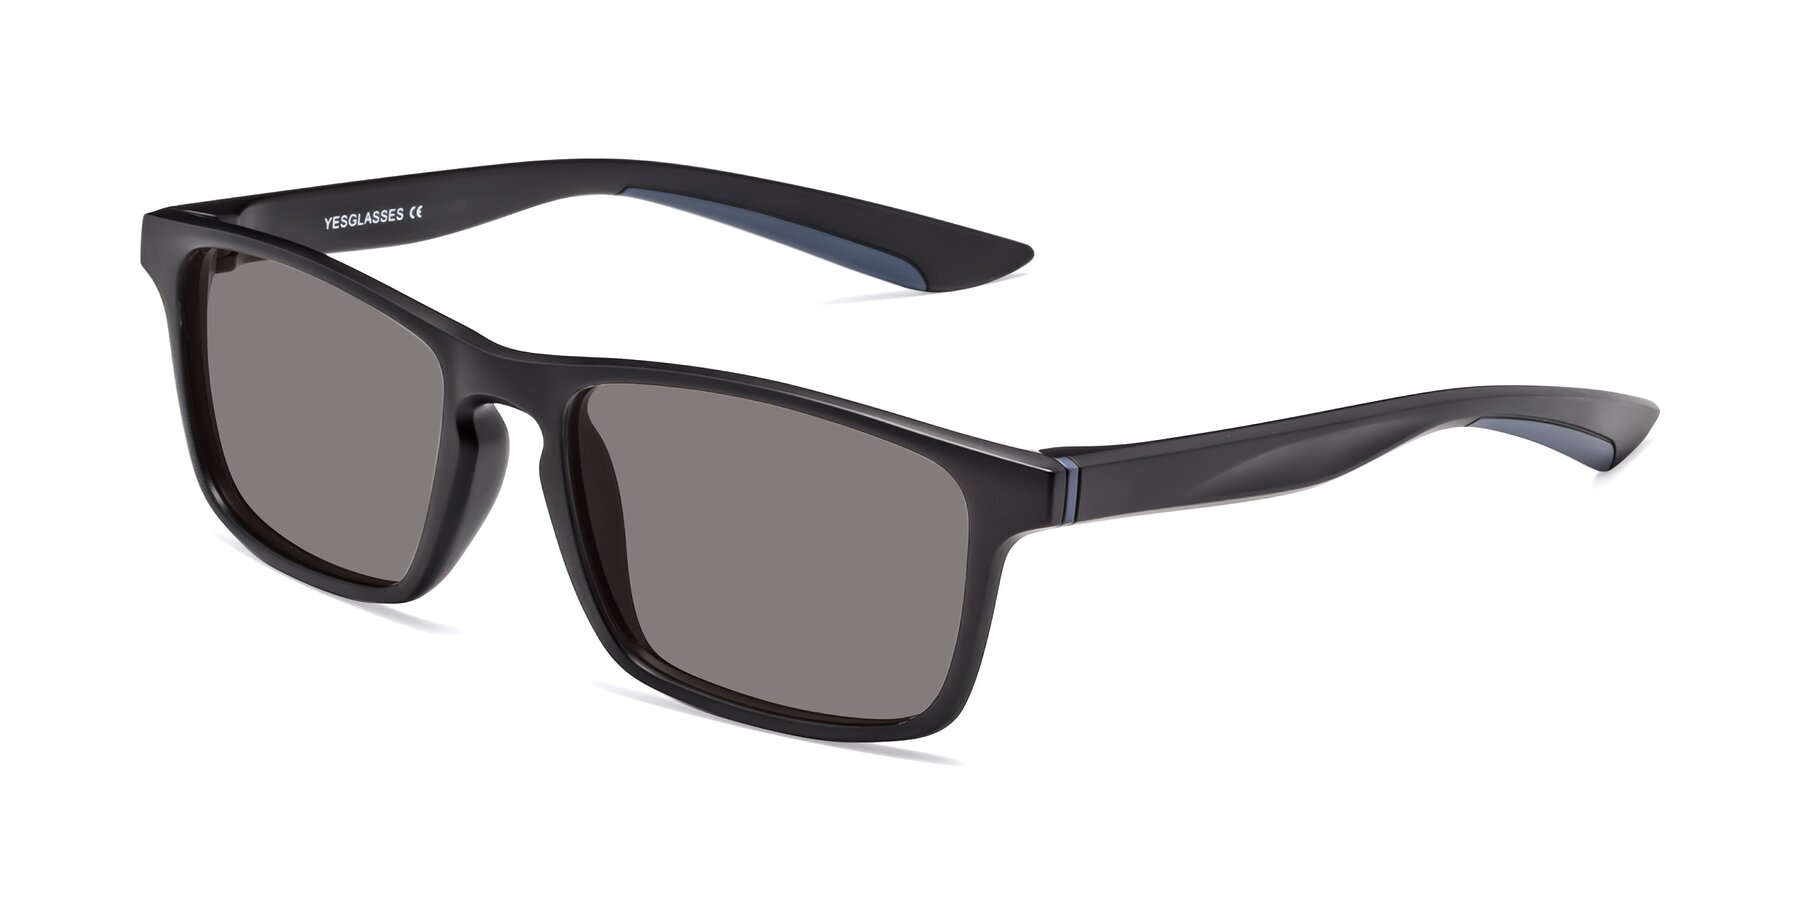 Angle of Passion in Matte Black-Blue with Medium Gray Tinted Lenses